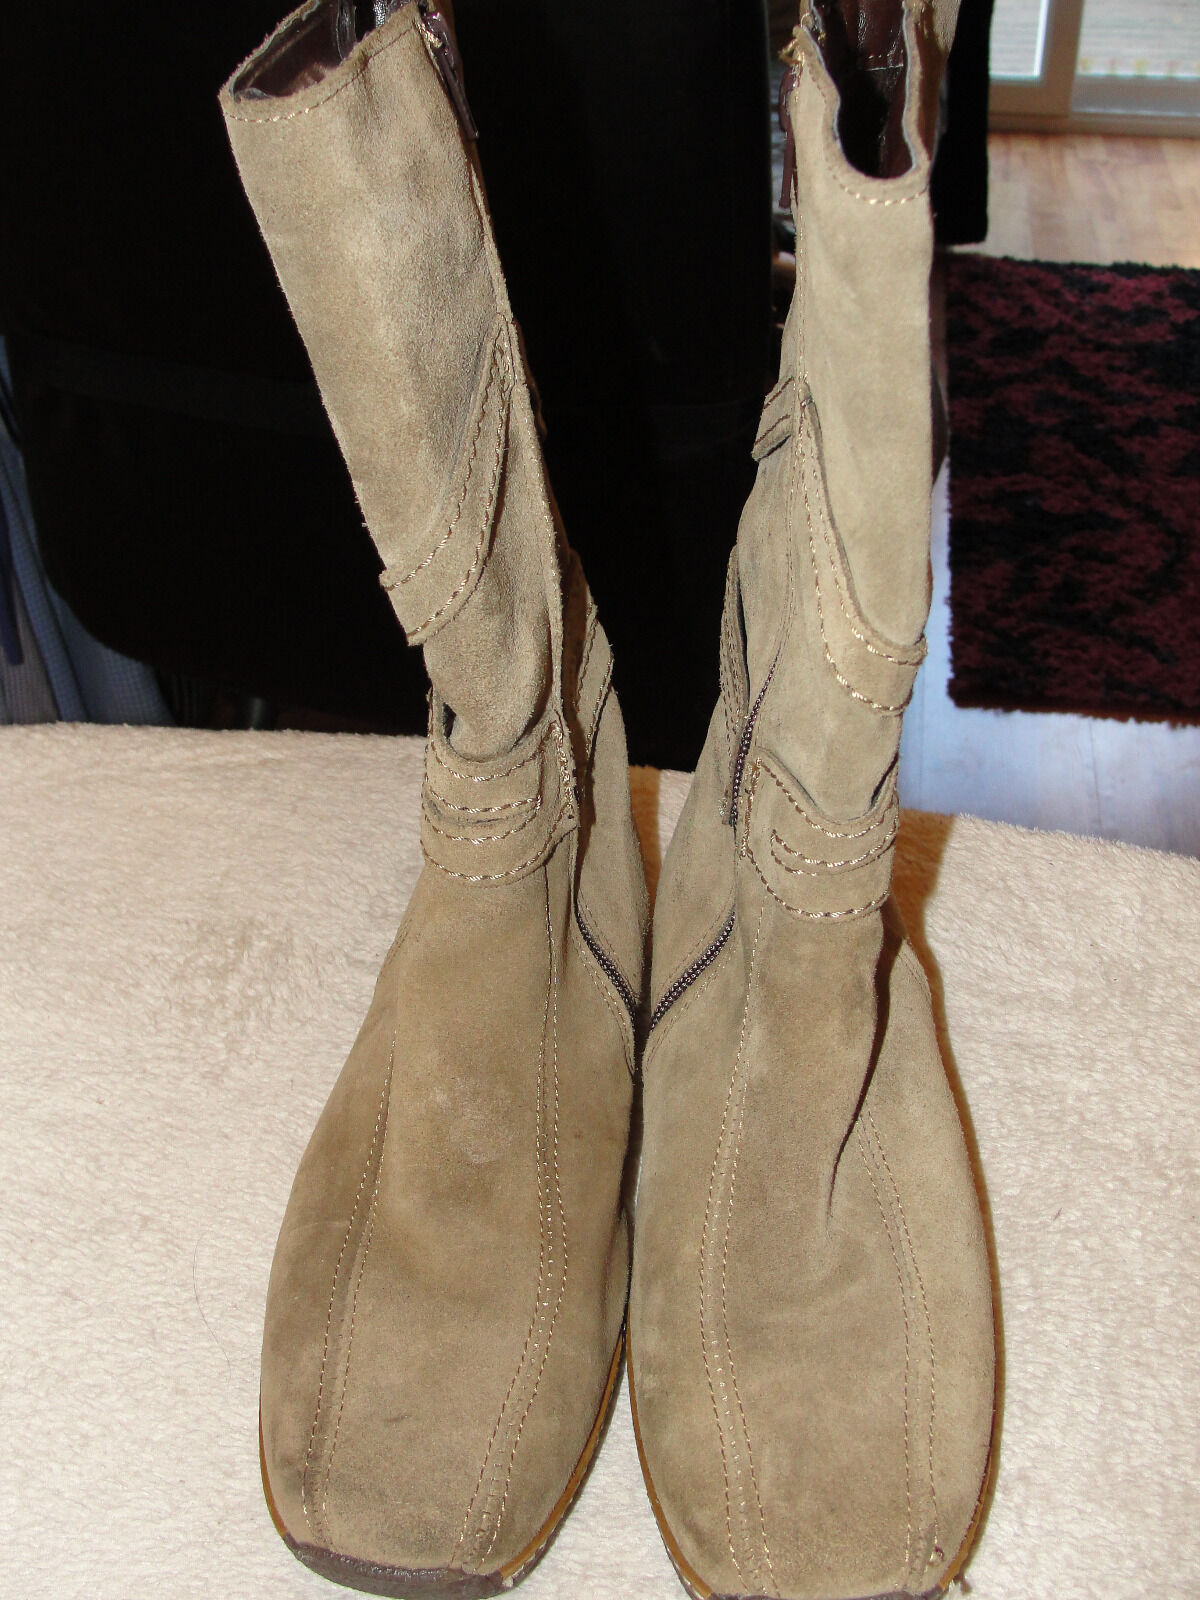 COUNTRYJACK SUEDE OTHER Stiefel SIZE 37 - NEW OTHER SUEDE - PLEASE READ 2170c9